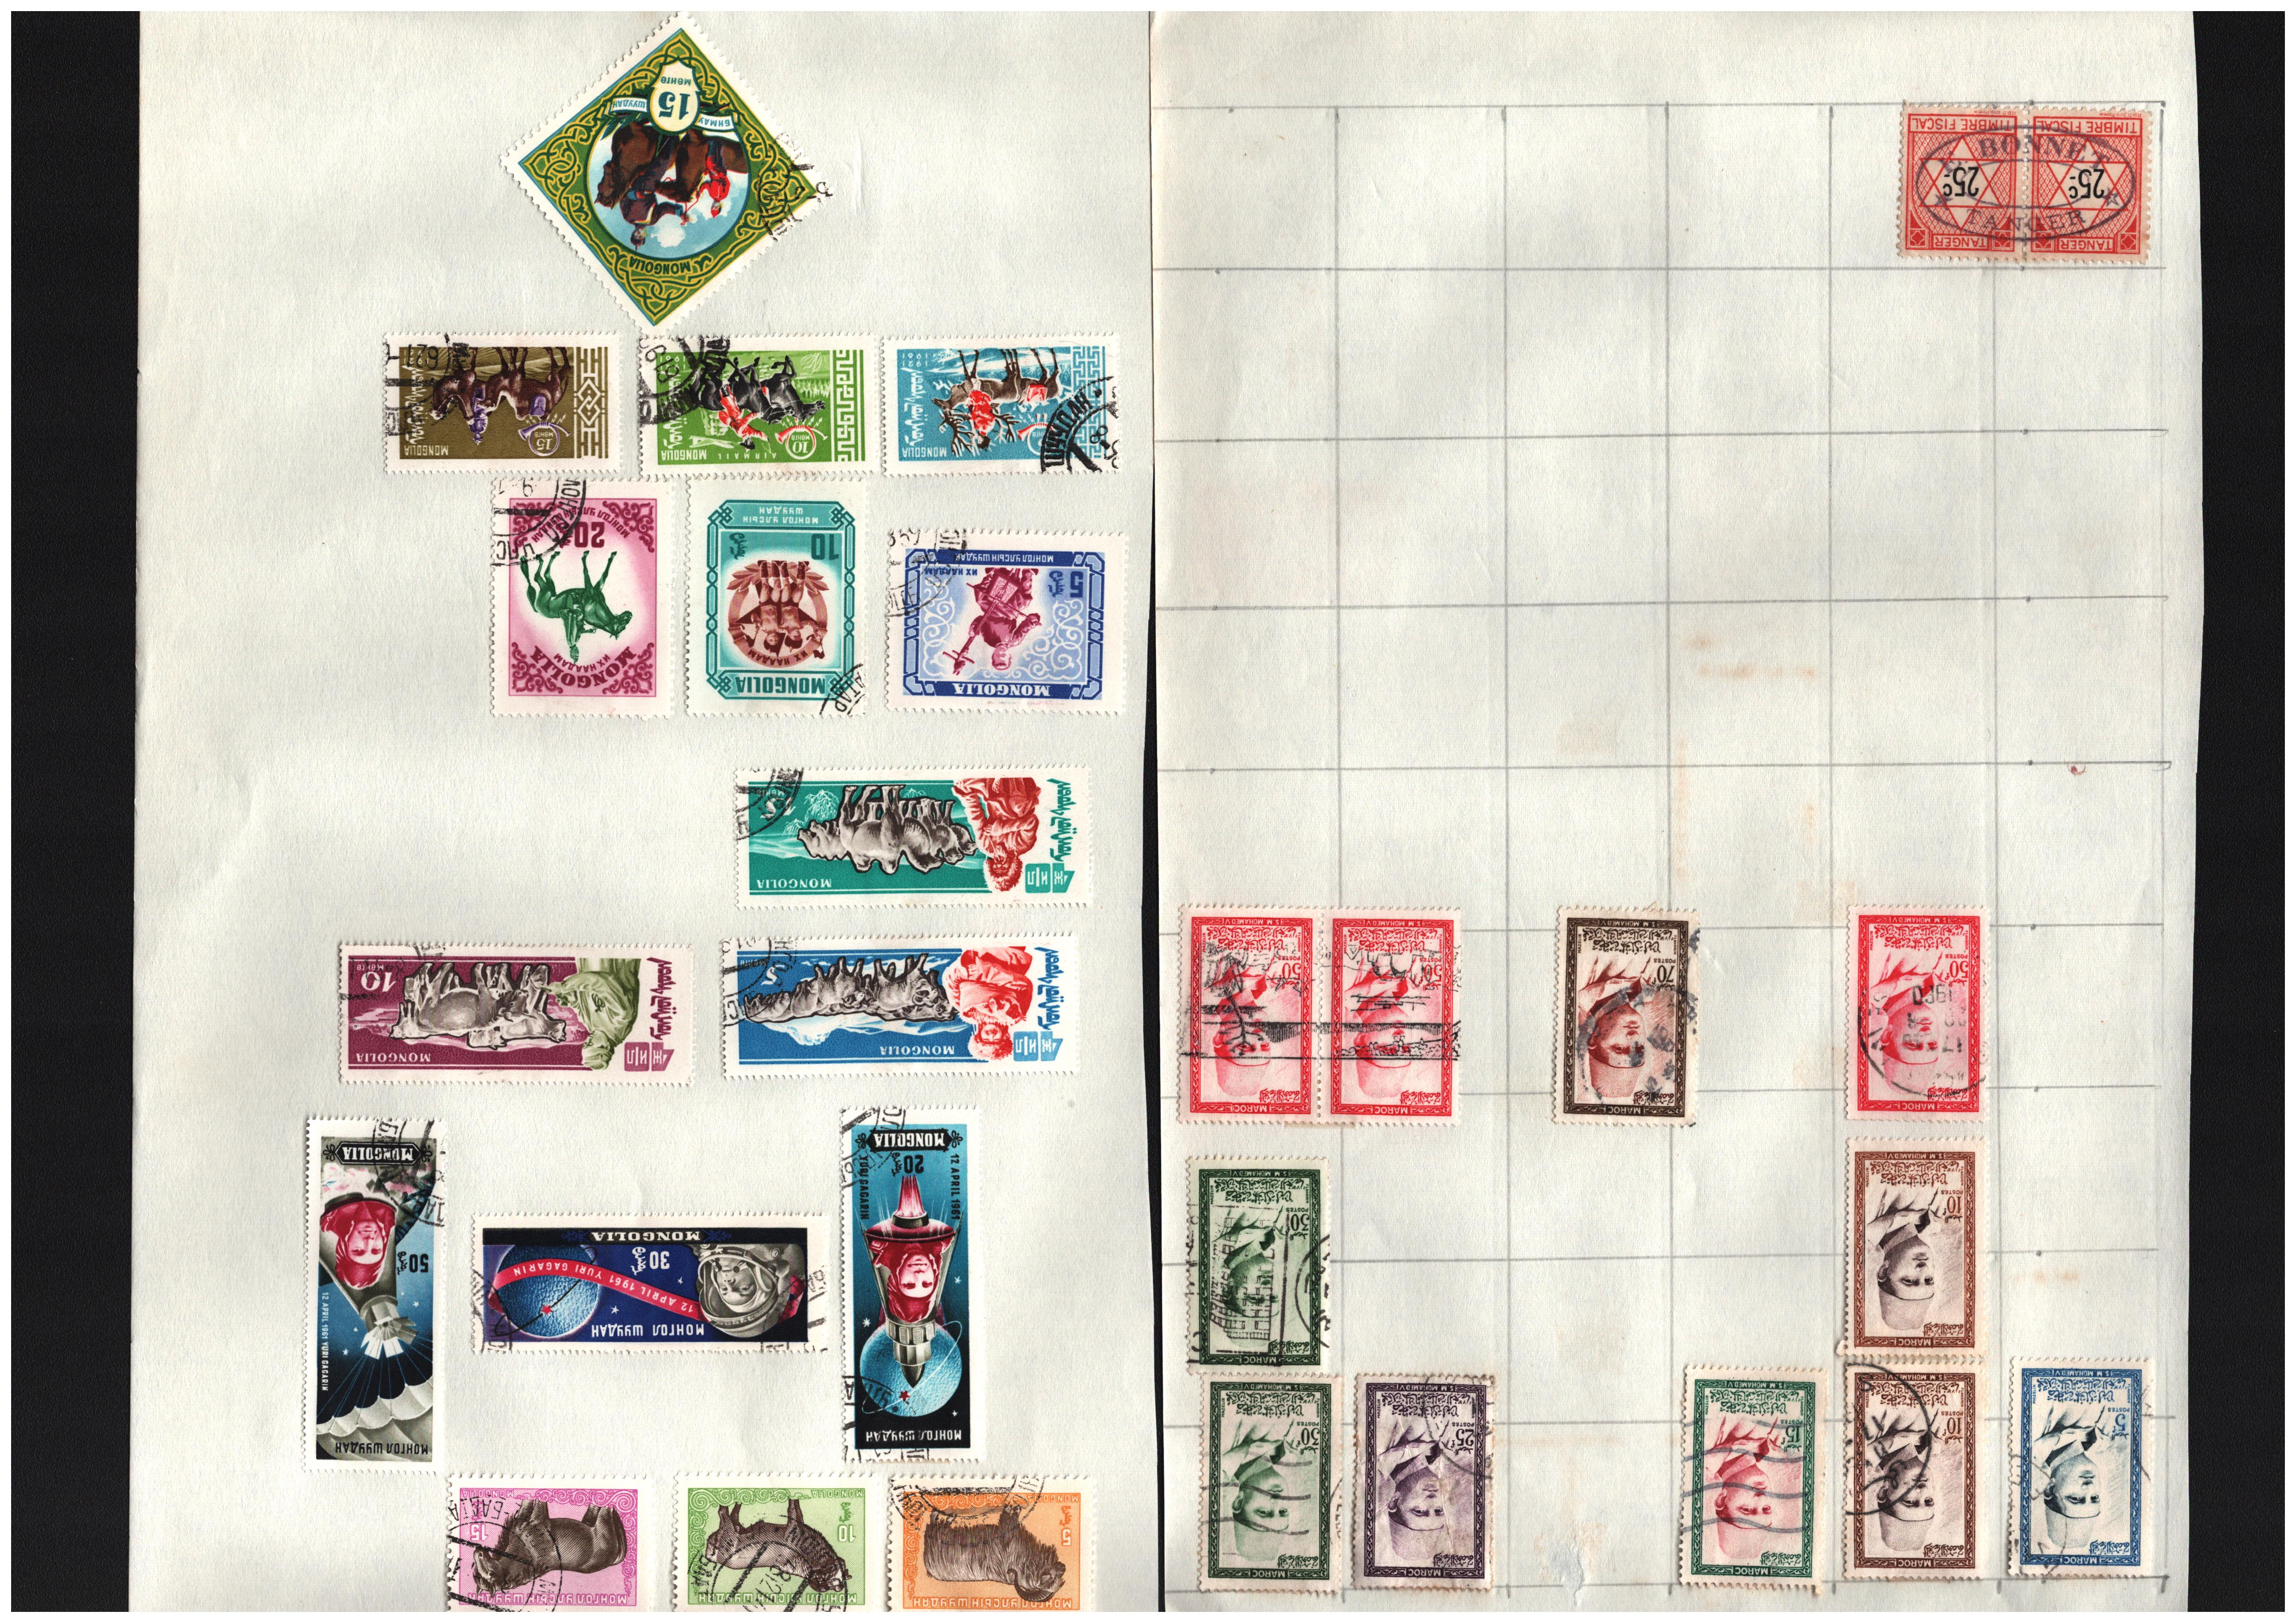 World stamp collection on 22 loose pages. Includes East Germany, Thailand, Morocco, United Nations - Image 2 of 2